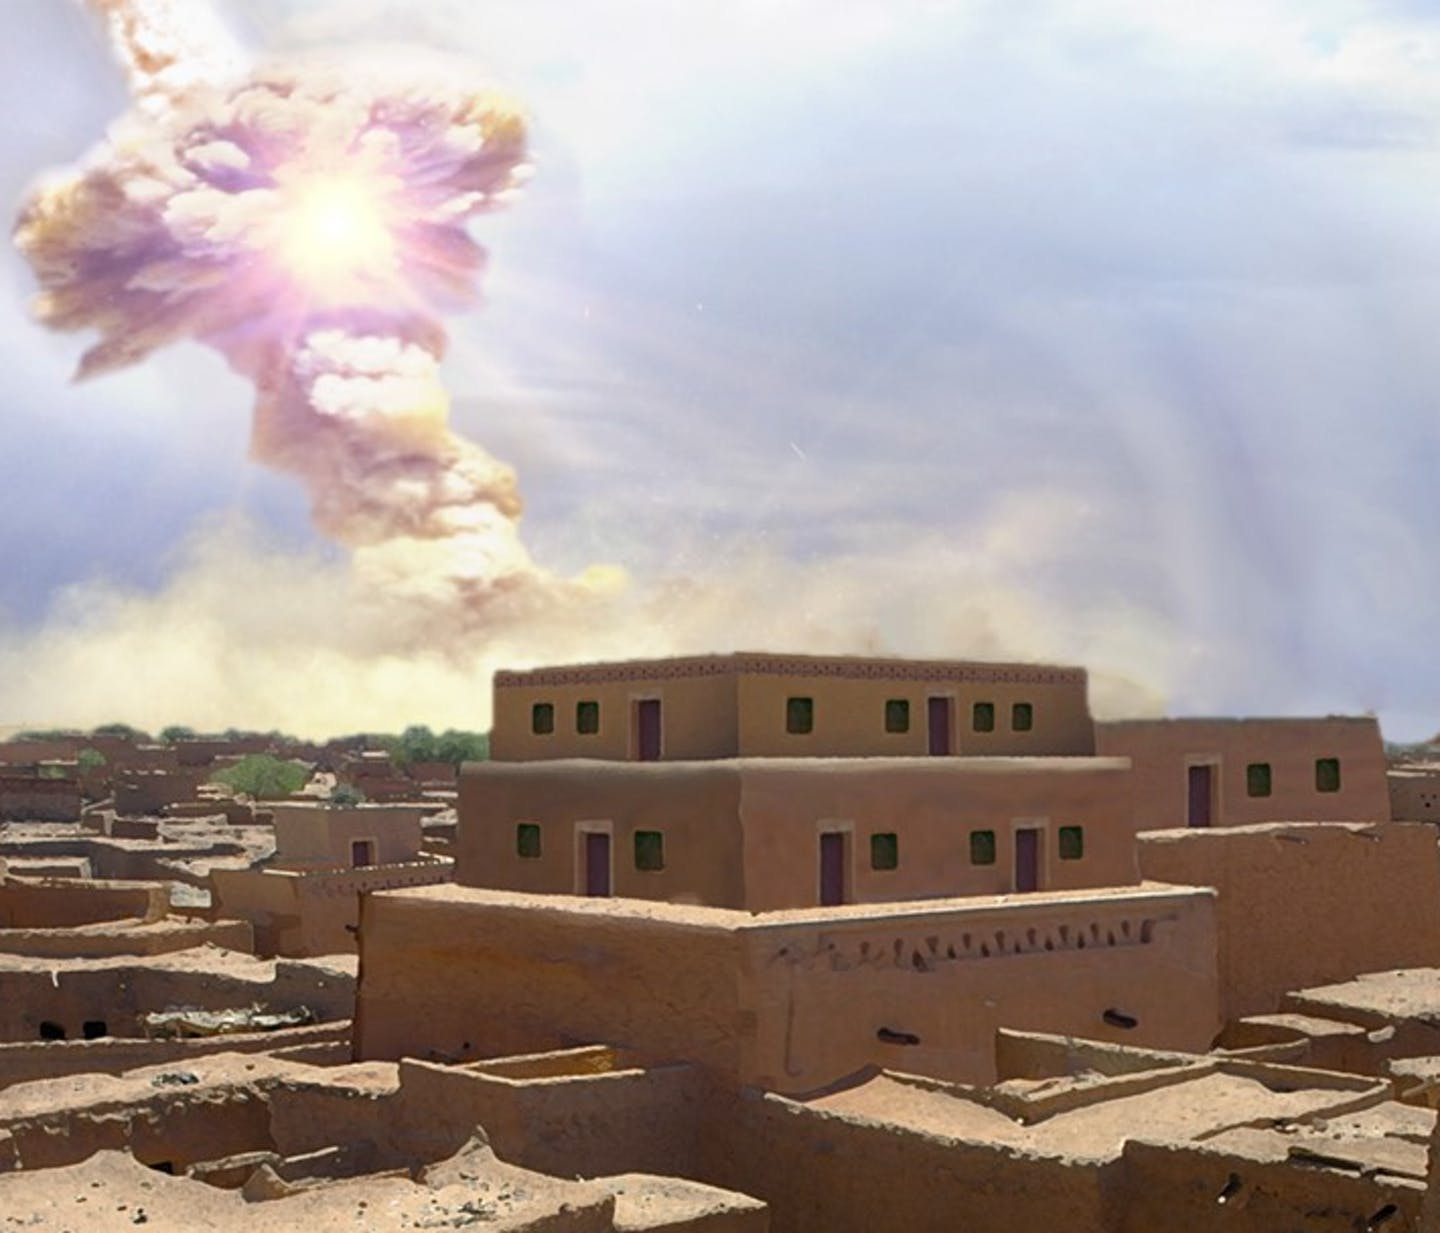 A giant space rock demolished an ancient Middle Eastern city and everyone in it – possibly inspiring the Biblical story of Sodom